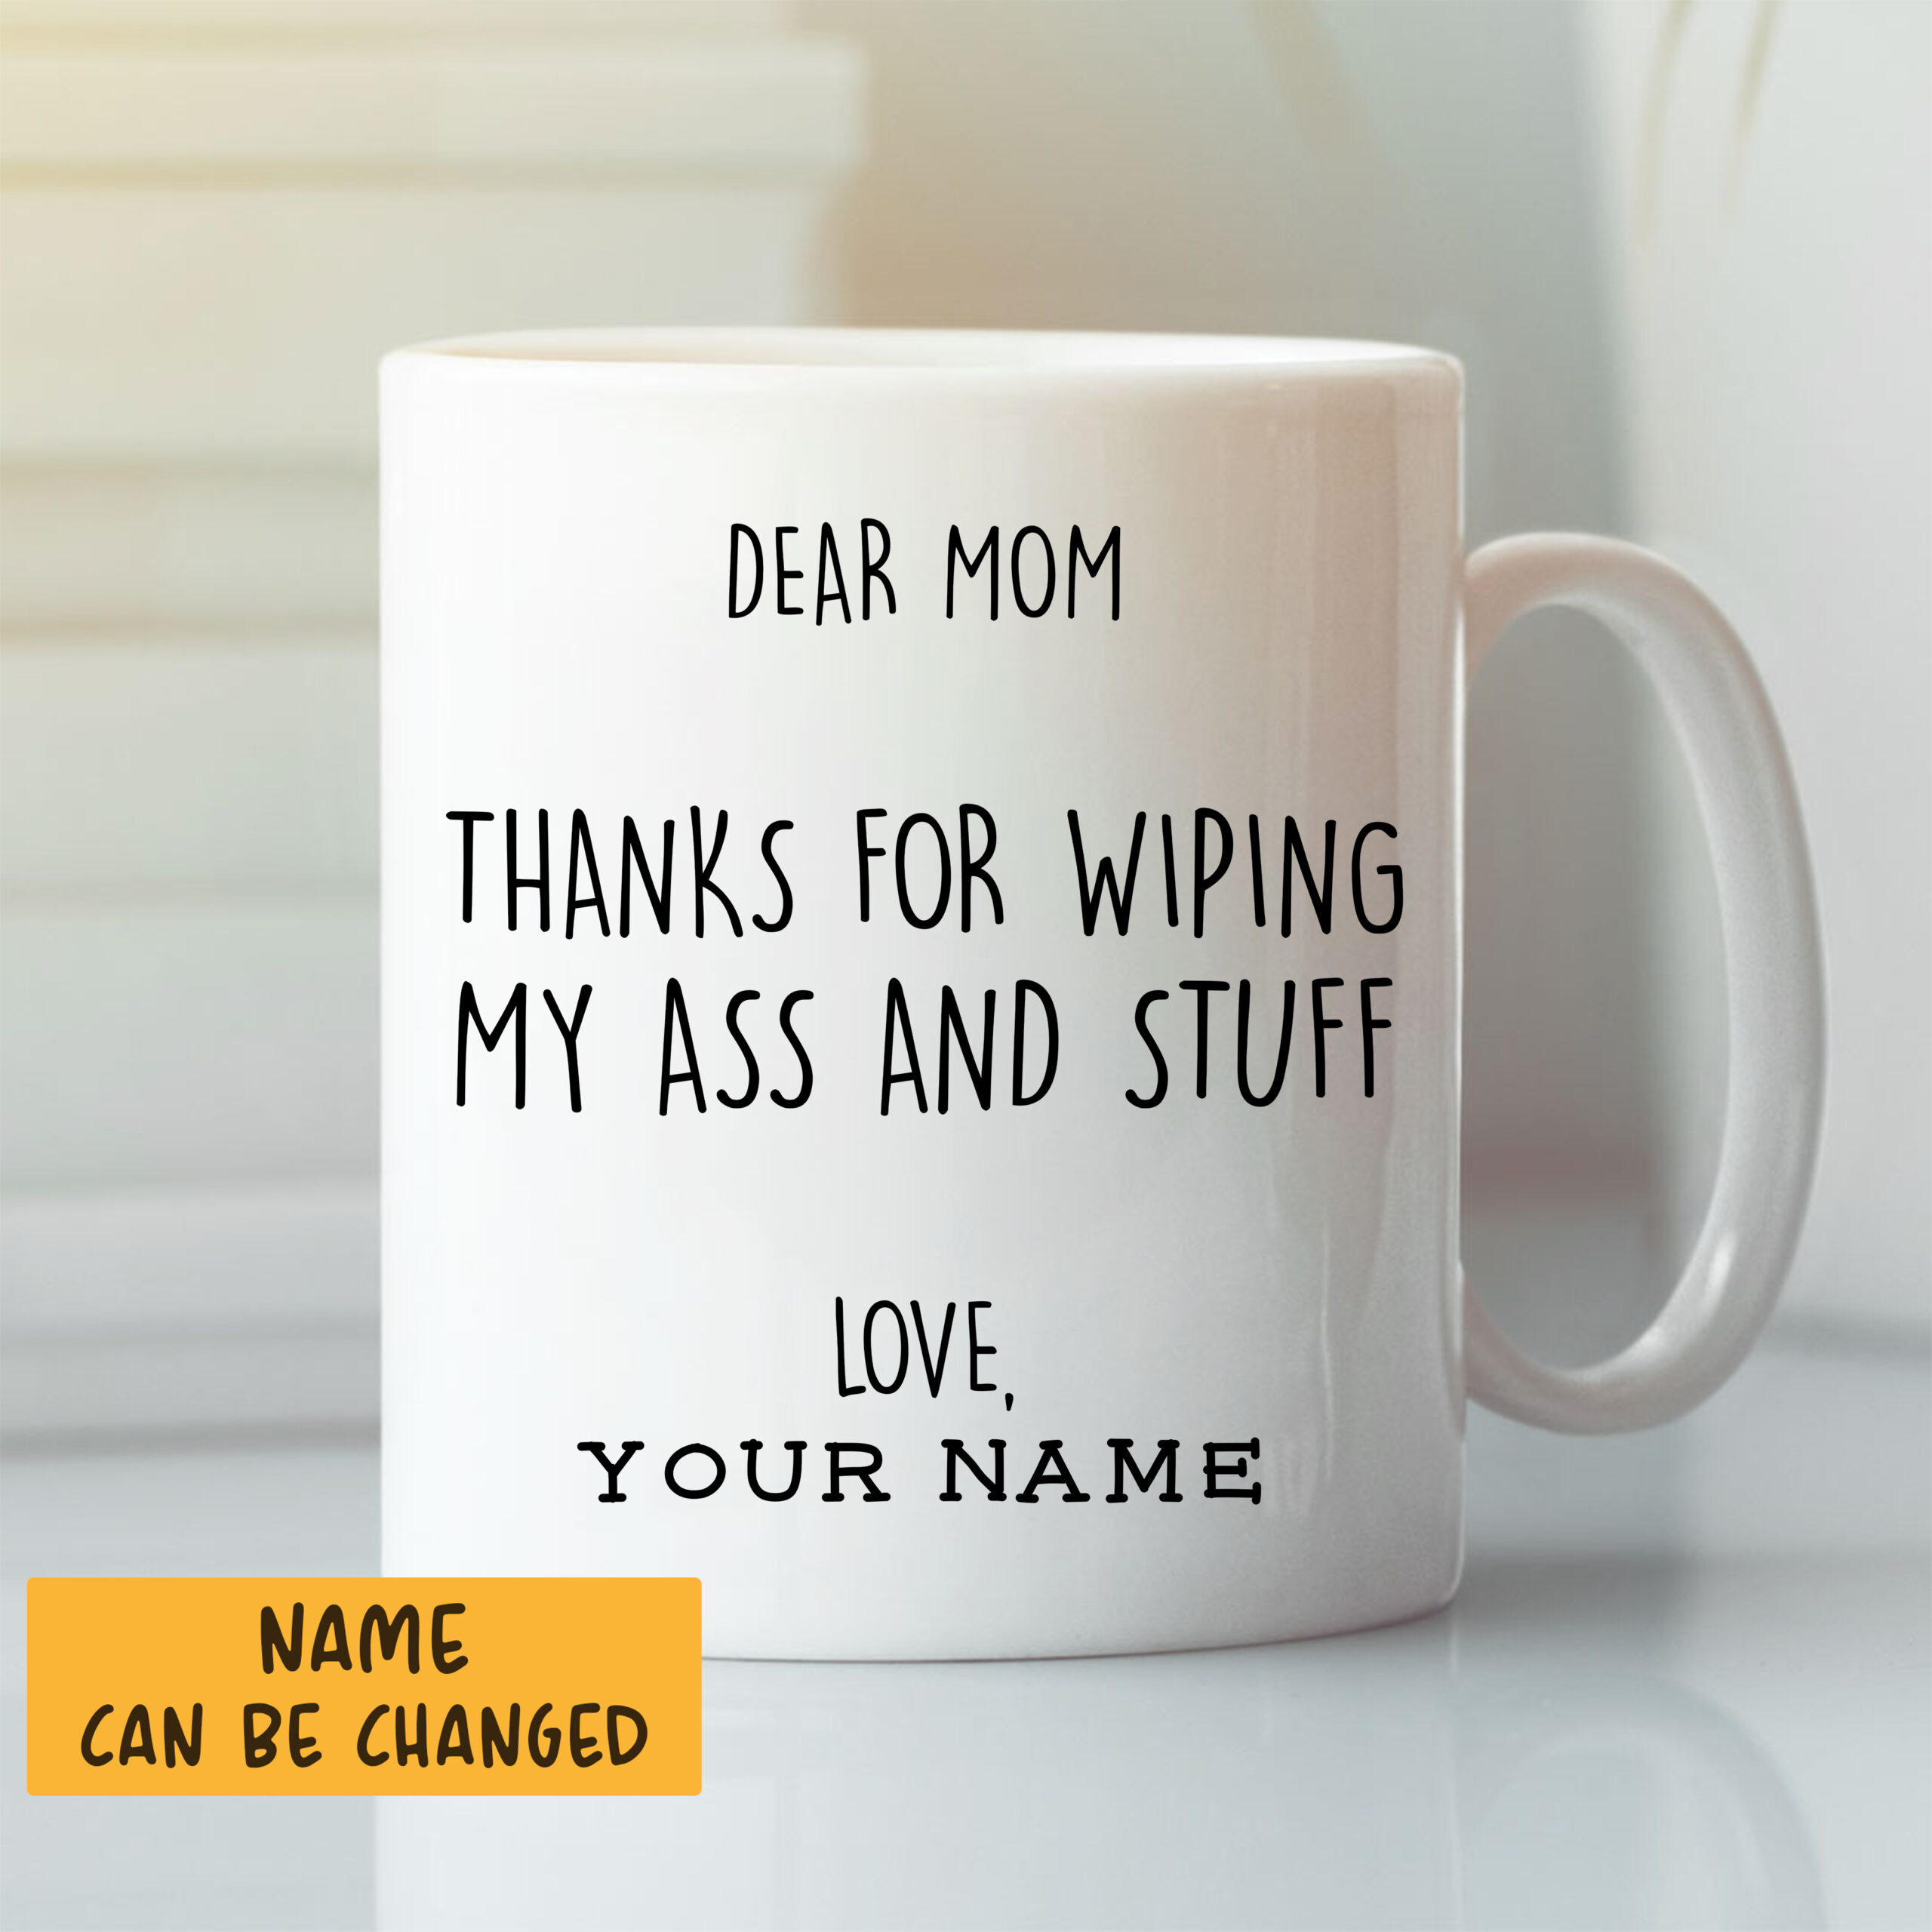 Dear Mom Thanks For Wiping My Ass And Stuff Personalized Mug